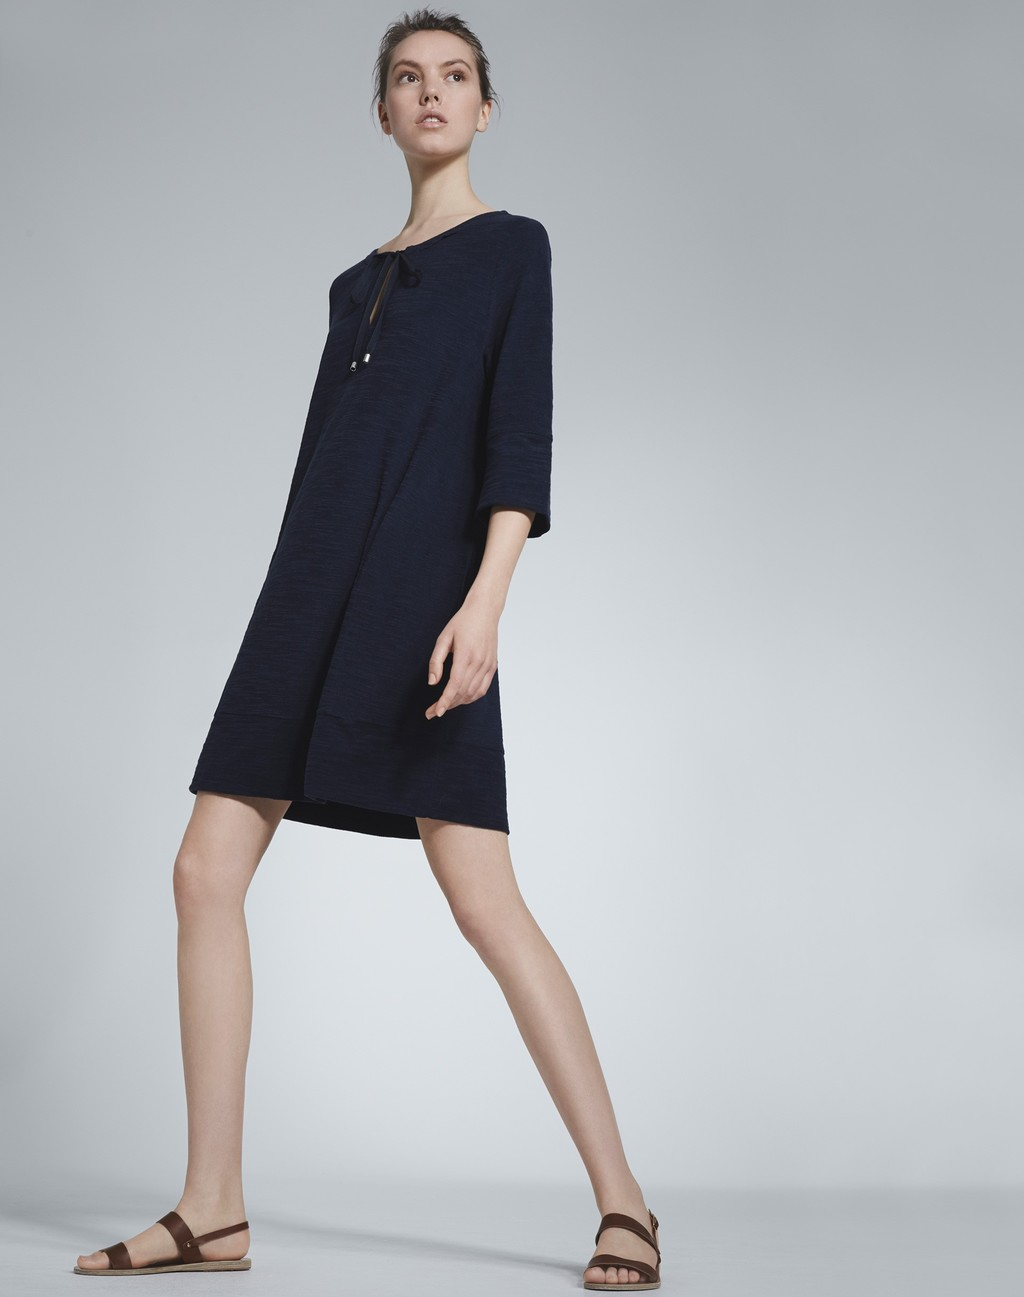 Towelling Kaftan Dress Navy - style: trapeze; fit: loose; pattern: plain; predominant colour: navy; occasions: casual; length: just above the knee; neckline: peep hole neckline; fibres: cotton - 100%; sleeve length: 3/4 length; sleeve style: standard; texture group: cotton feel fabrics; pattern type: fabric; season: s/s 2016; wardrobe: basic